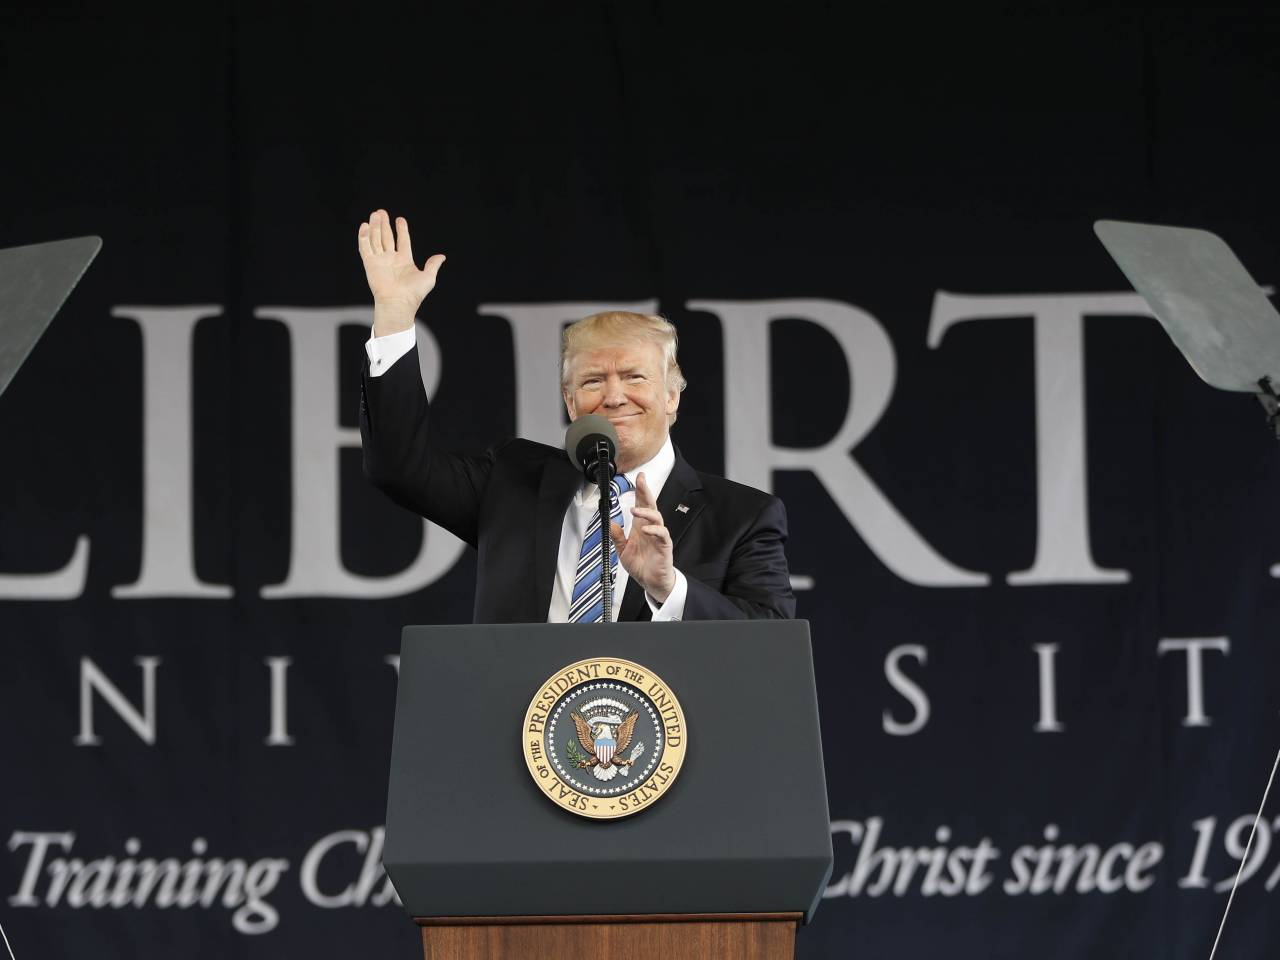 Donald trump delivered his first commencement address as president saturday at in lynchburg virginia before a of 50 000 trump appealed to the graduates